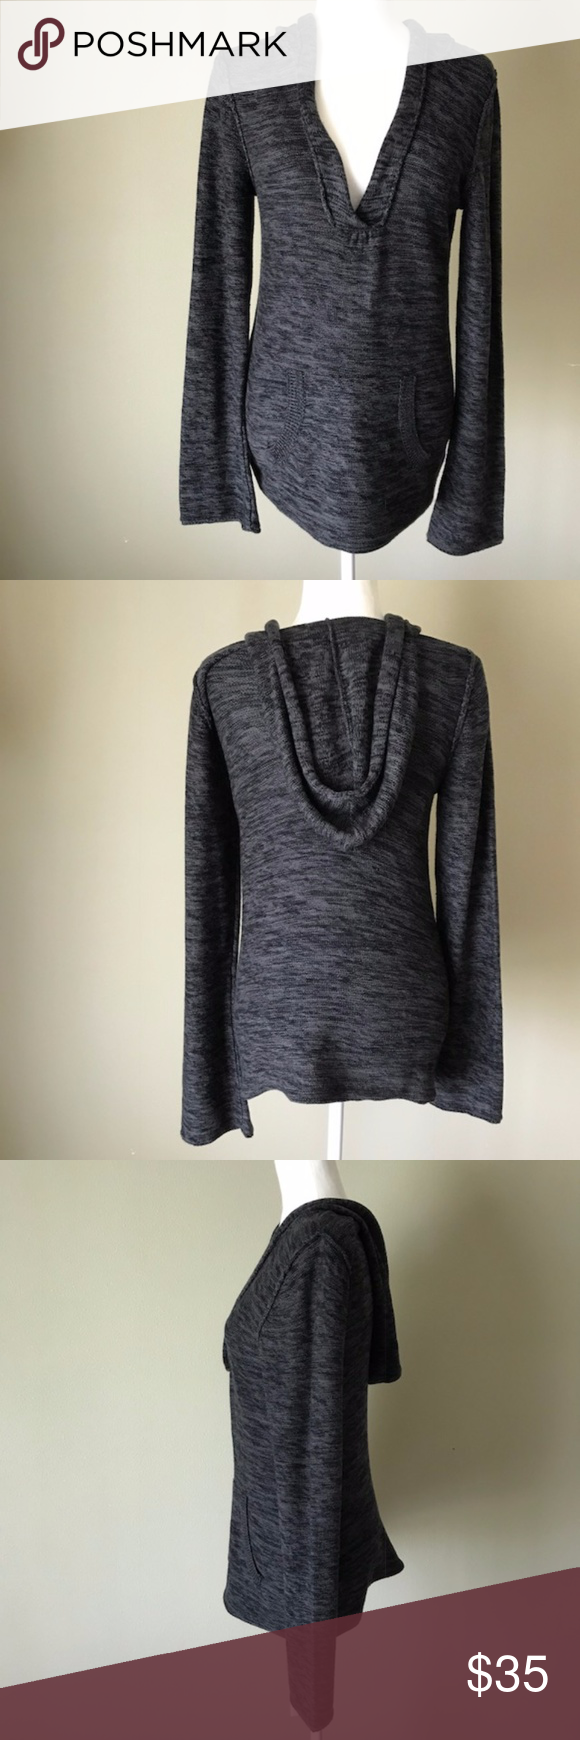 Roxy Black Gray Hooded Sweater sz Large | Hooded sweater, Roxy and ...